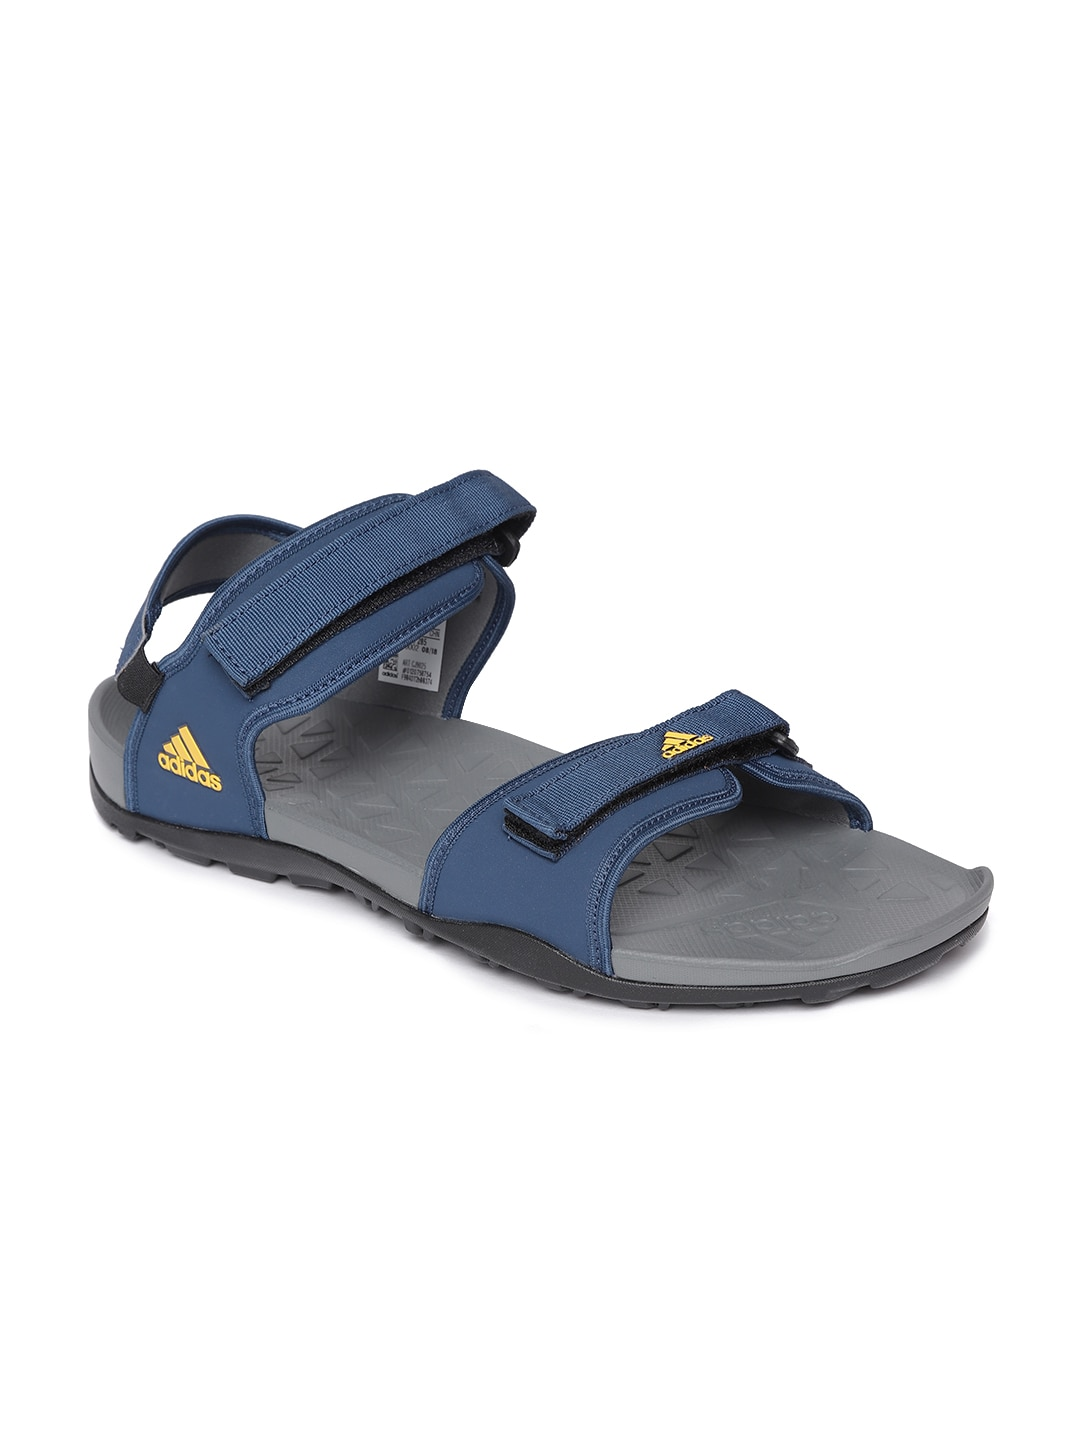 889a2f48e174 Adidas Men Sandals Jeans - Buy Adidas Men Sandals Jeans online in India